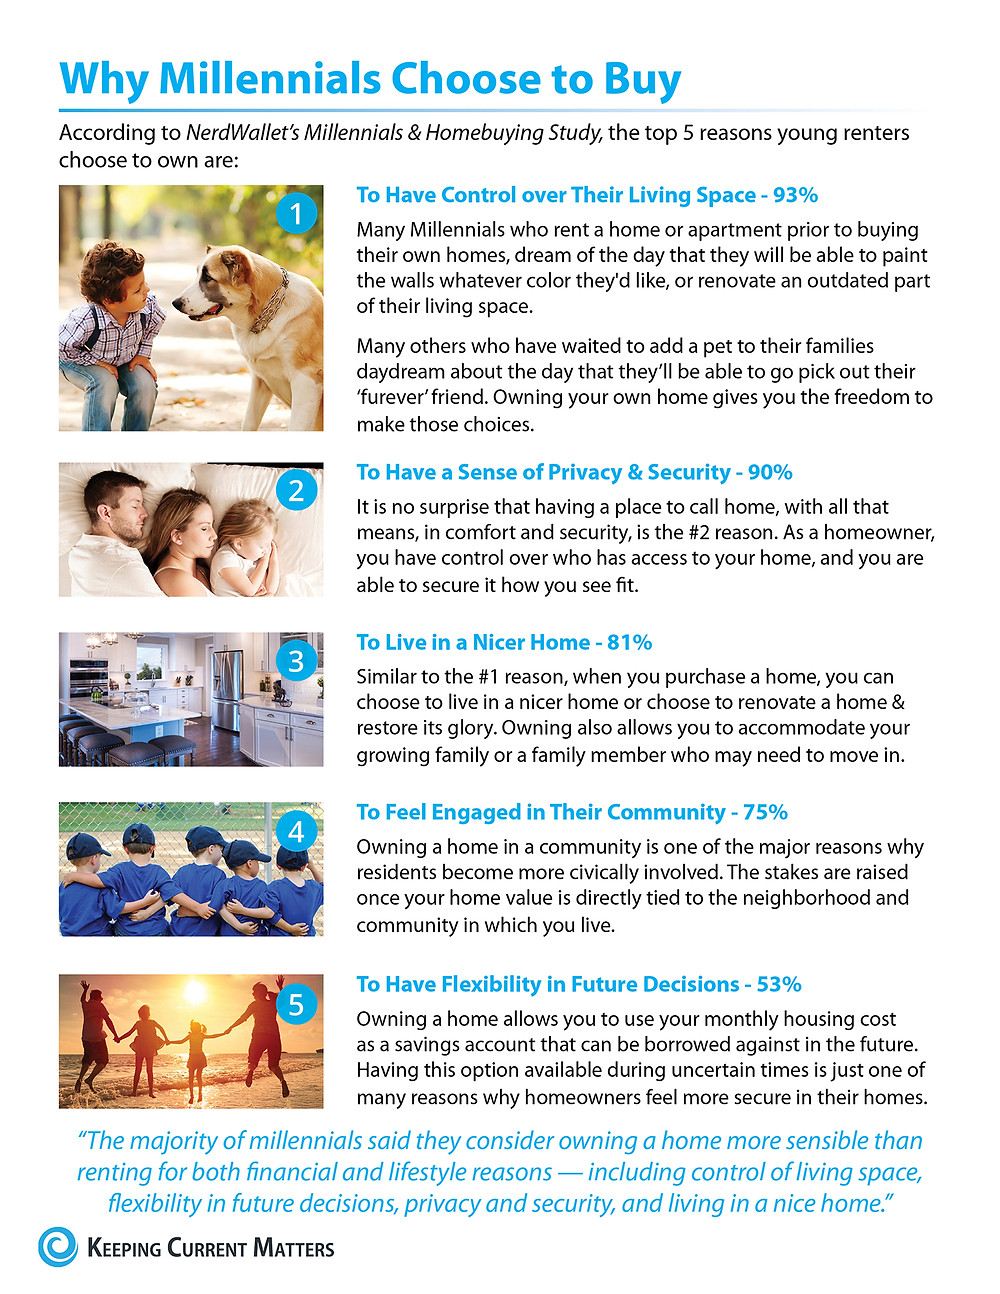 5 Reasons Millennials Choose to Buy a Home [INFOGRAPHIC] | Keeping Current Matters